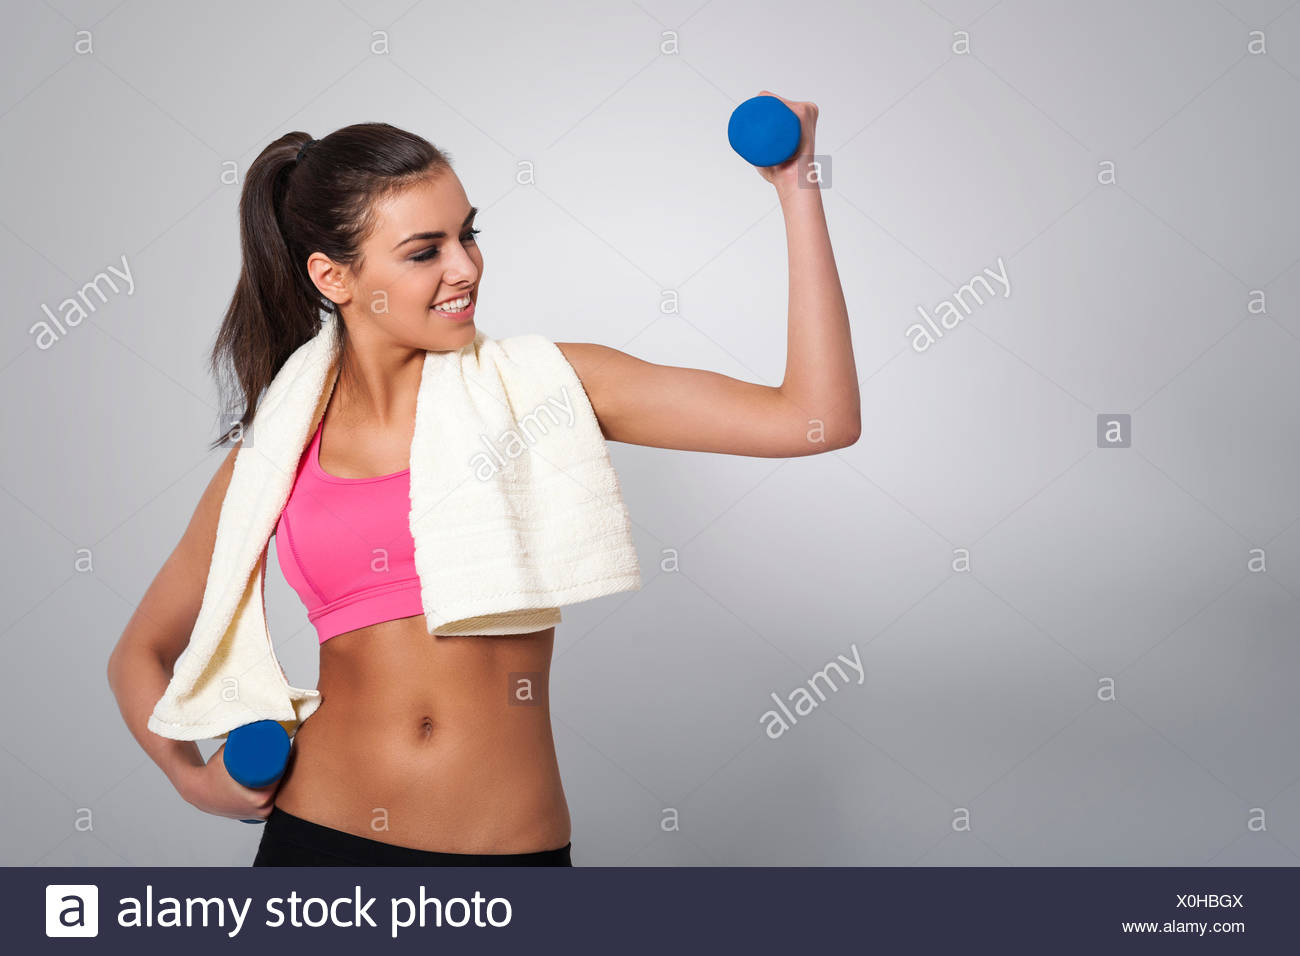 Attractive woman working hard to stay fit. Debica, Poland - Stock Image